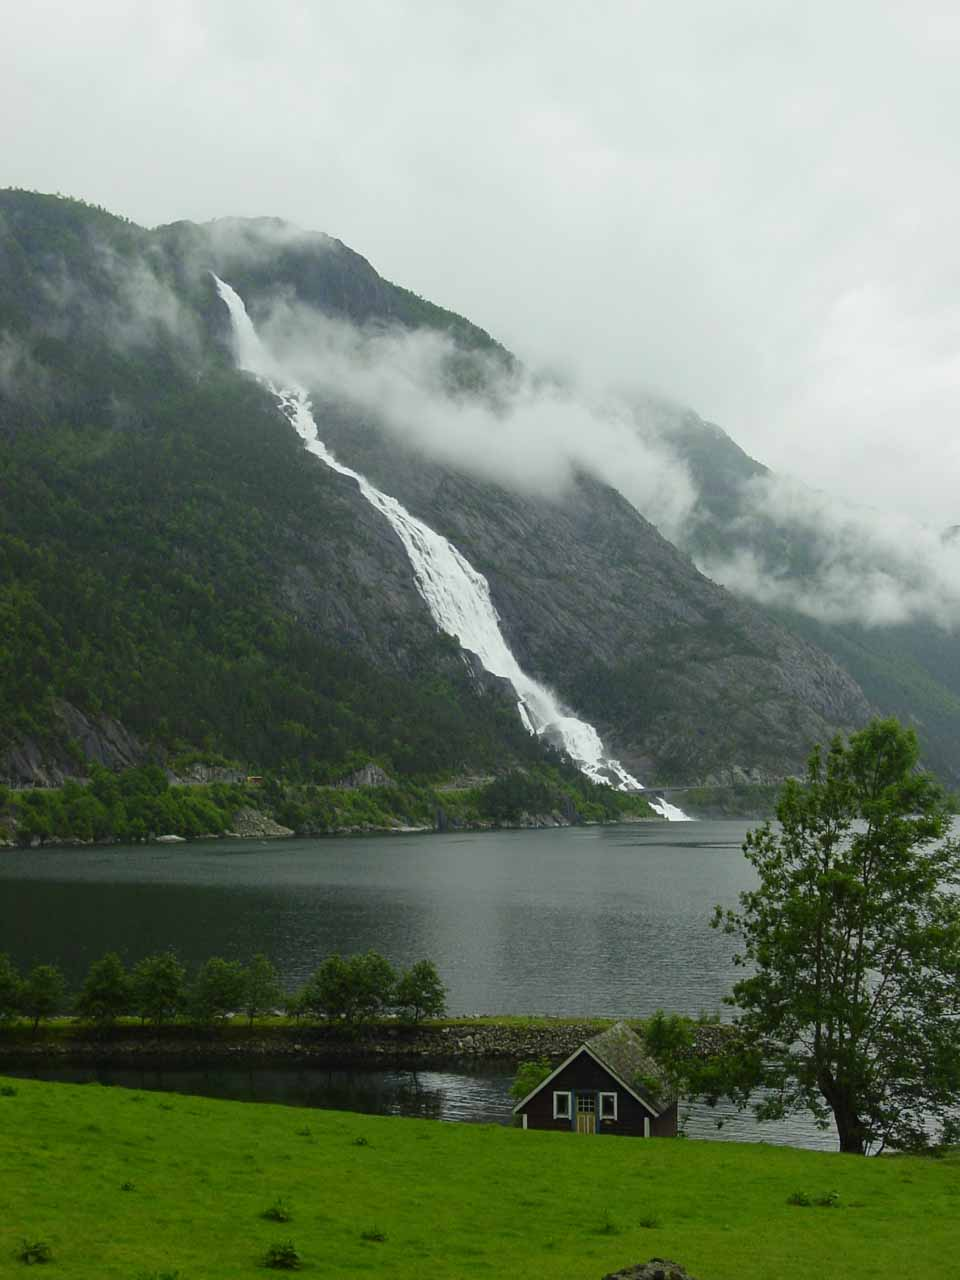 The waterfall we visited just prior to Espelandsfossen was Langfoss seen here tumbling over the Åkrafjord